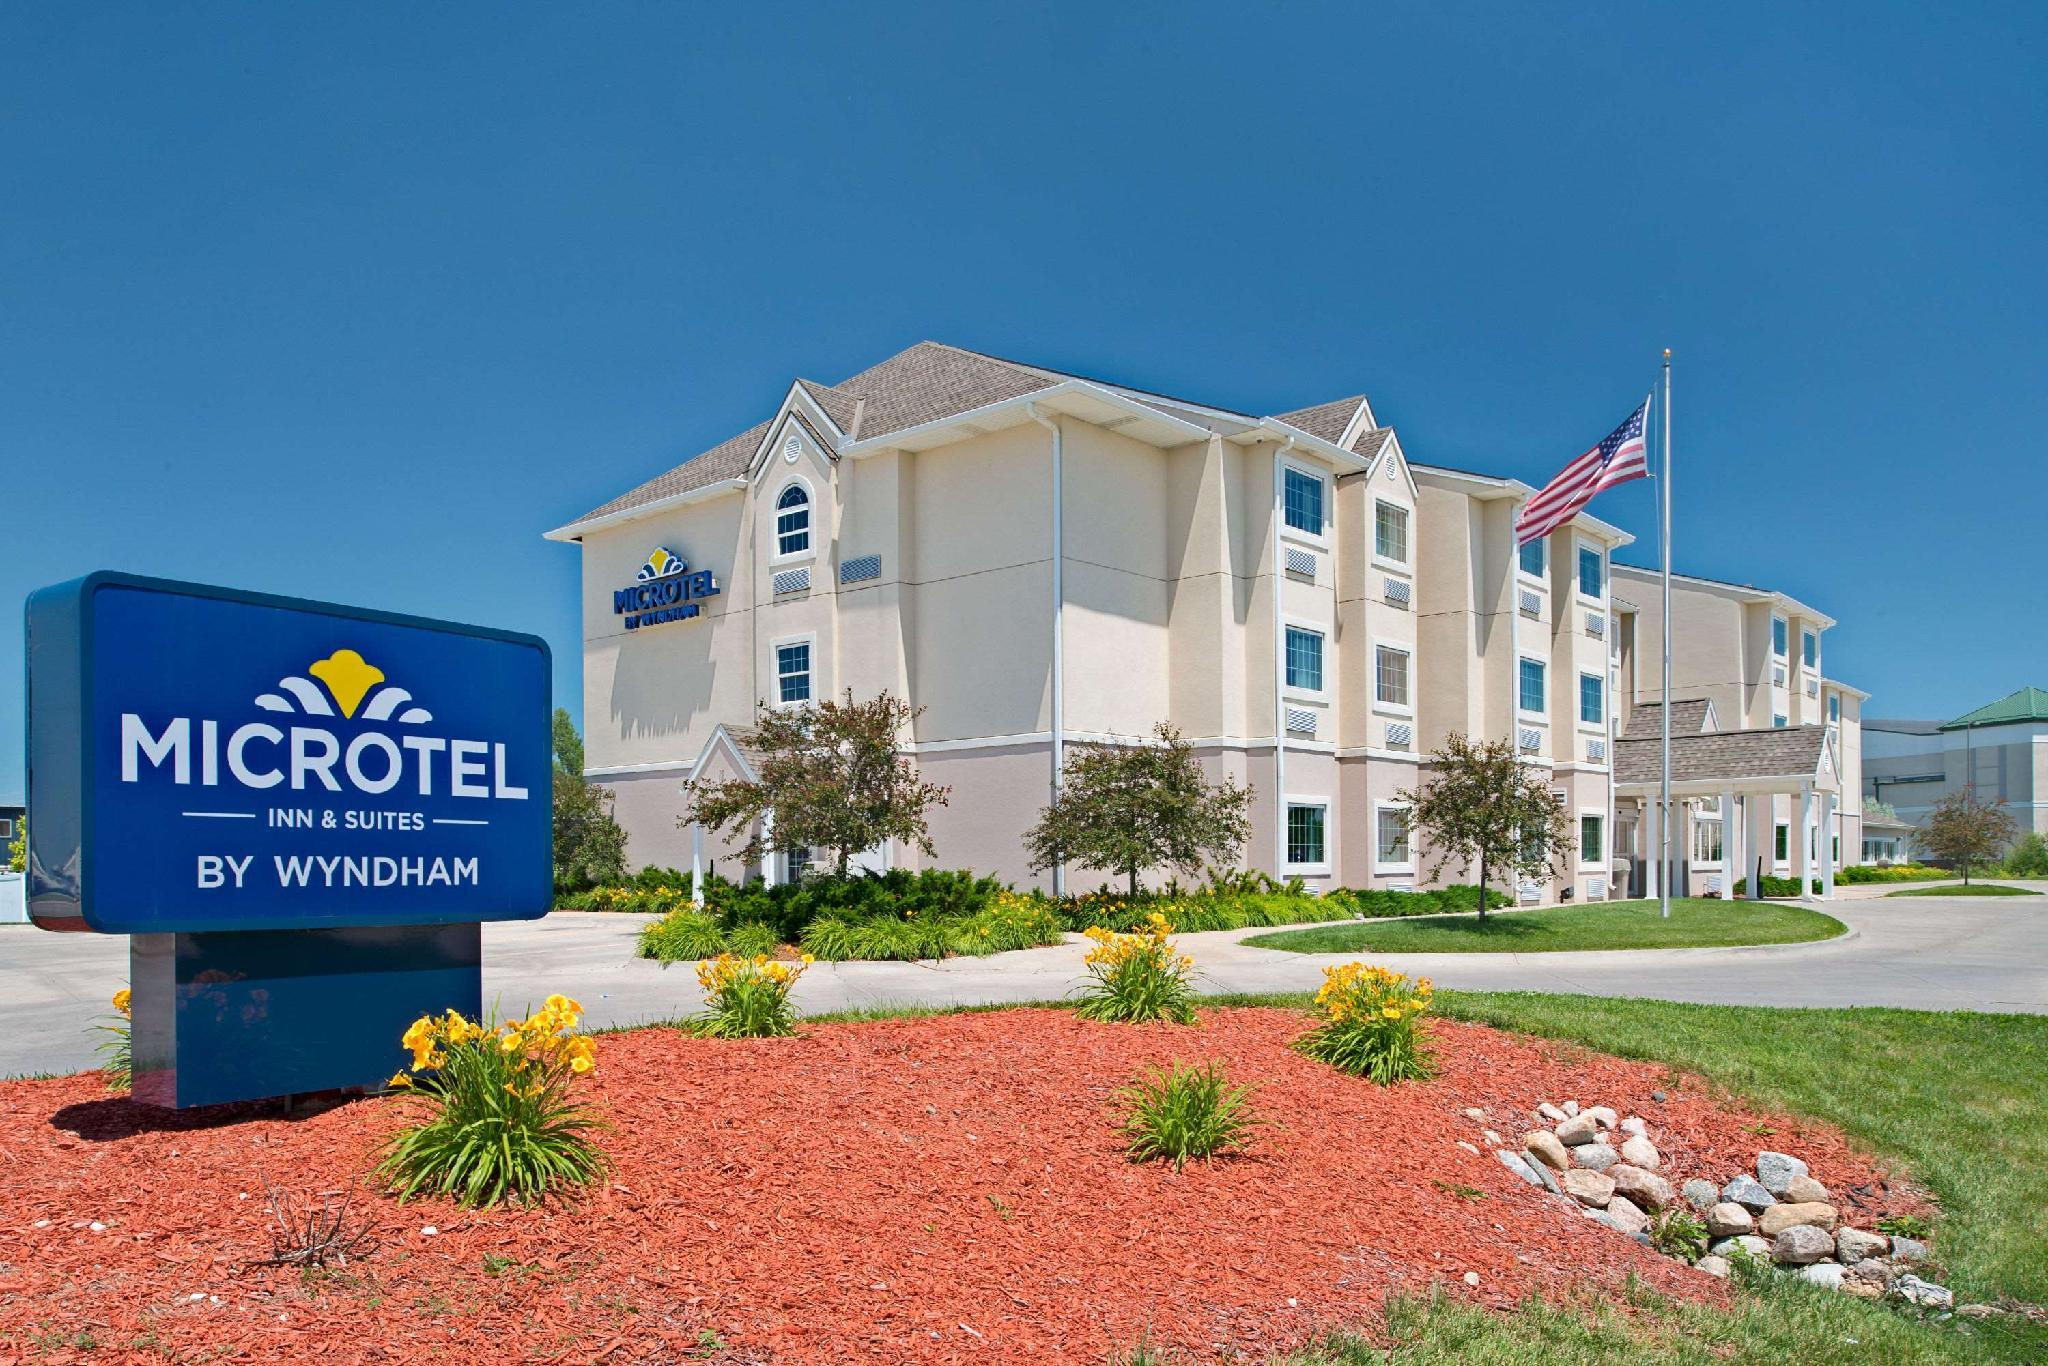 Microtel Inn And Suites By Wyndham Council Bluffs